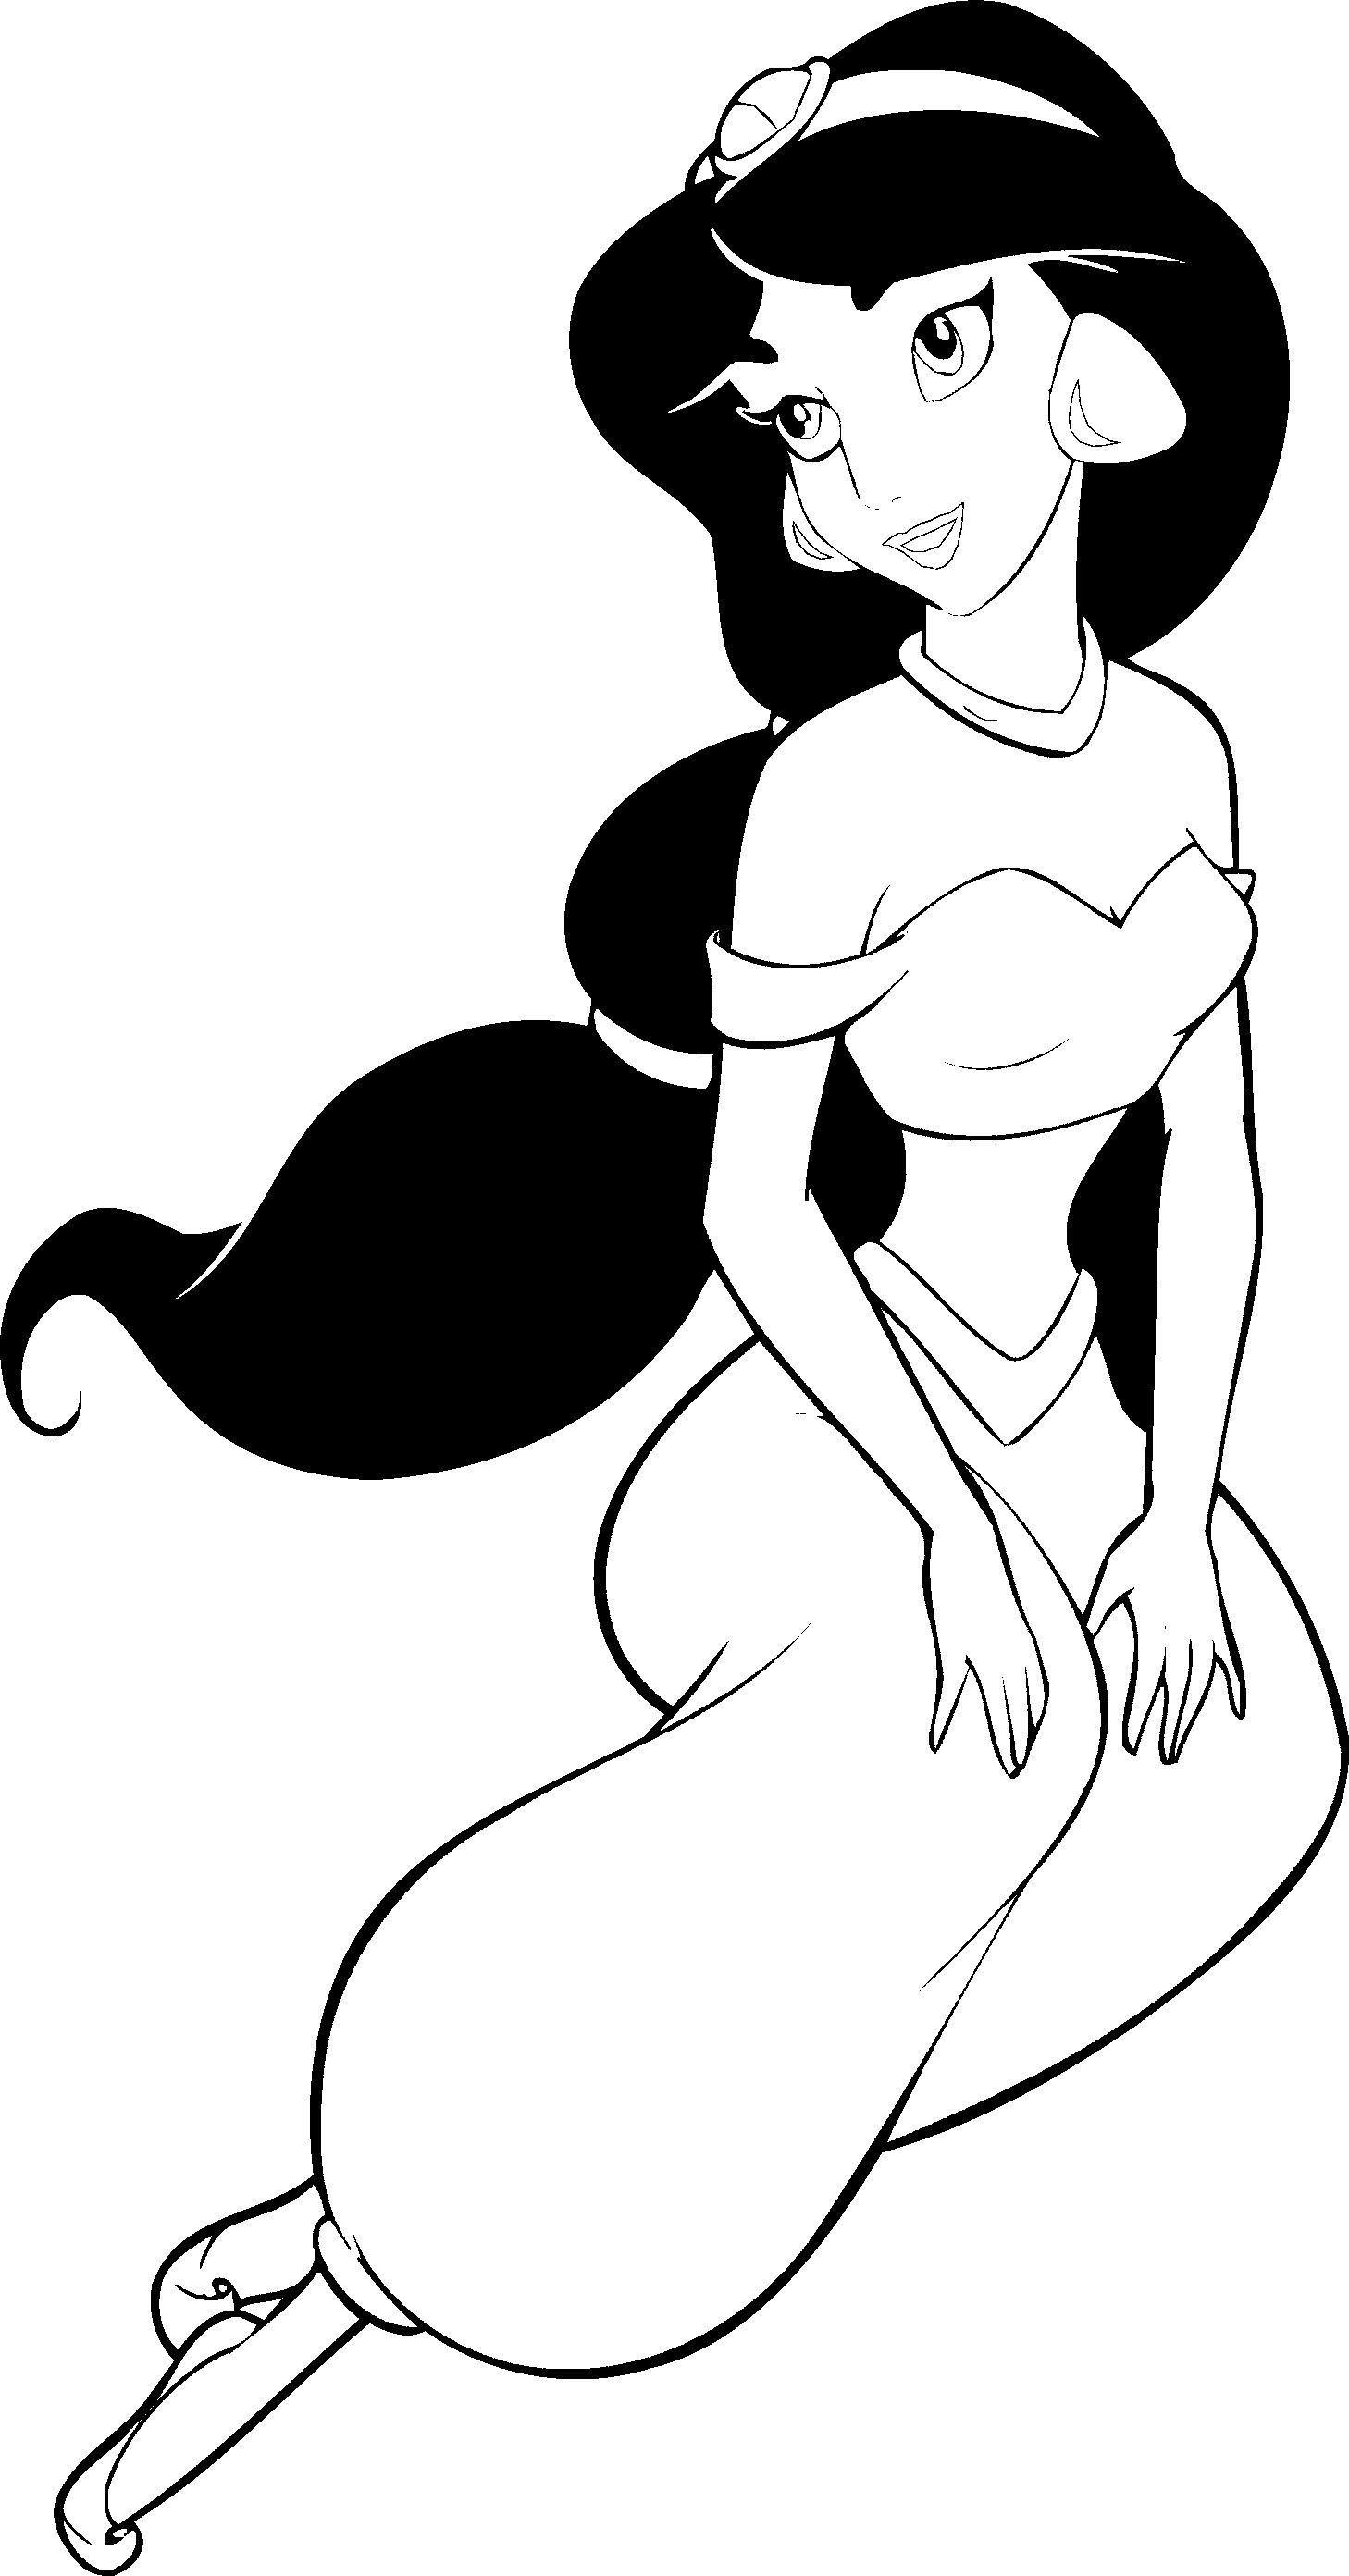 Jasmine Disney Princess Coloring Pages Disney Princess Colors Princess Coloring Pages